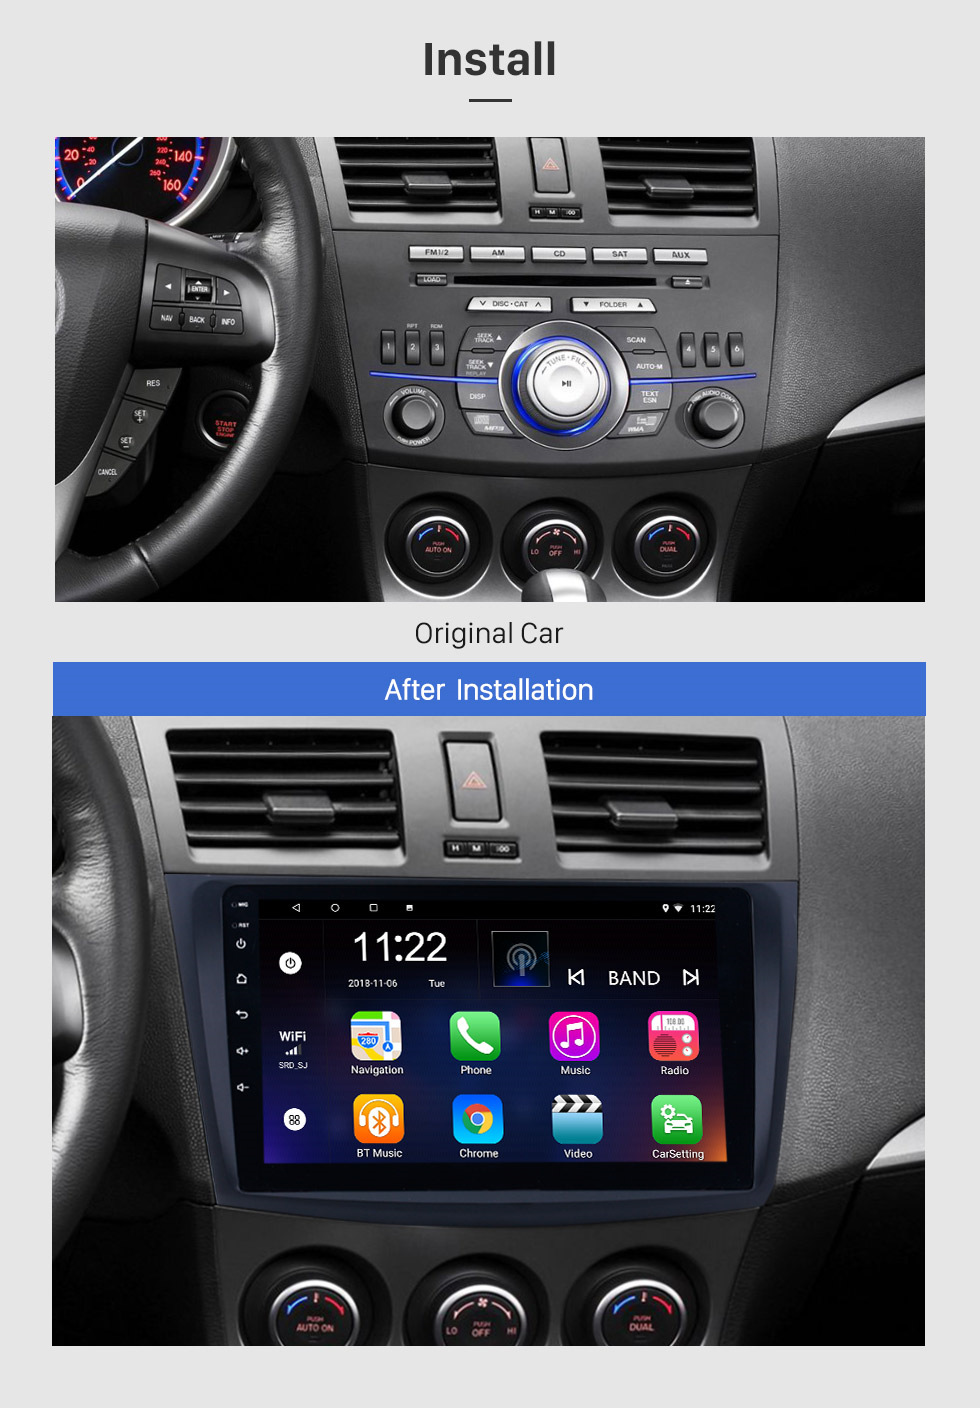 Seicane For 2009-2012 Mazda 3 Axela 9 inch Android 8.1 HD Touchscreen Auto Stereo 3G WIFI Bluetooth GPS Navigation system Radio support SWC DVR OBD Carplay RDS